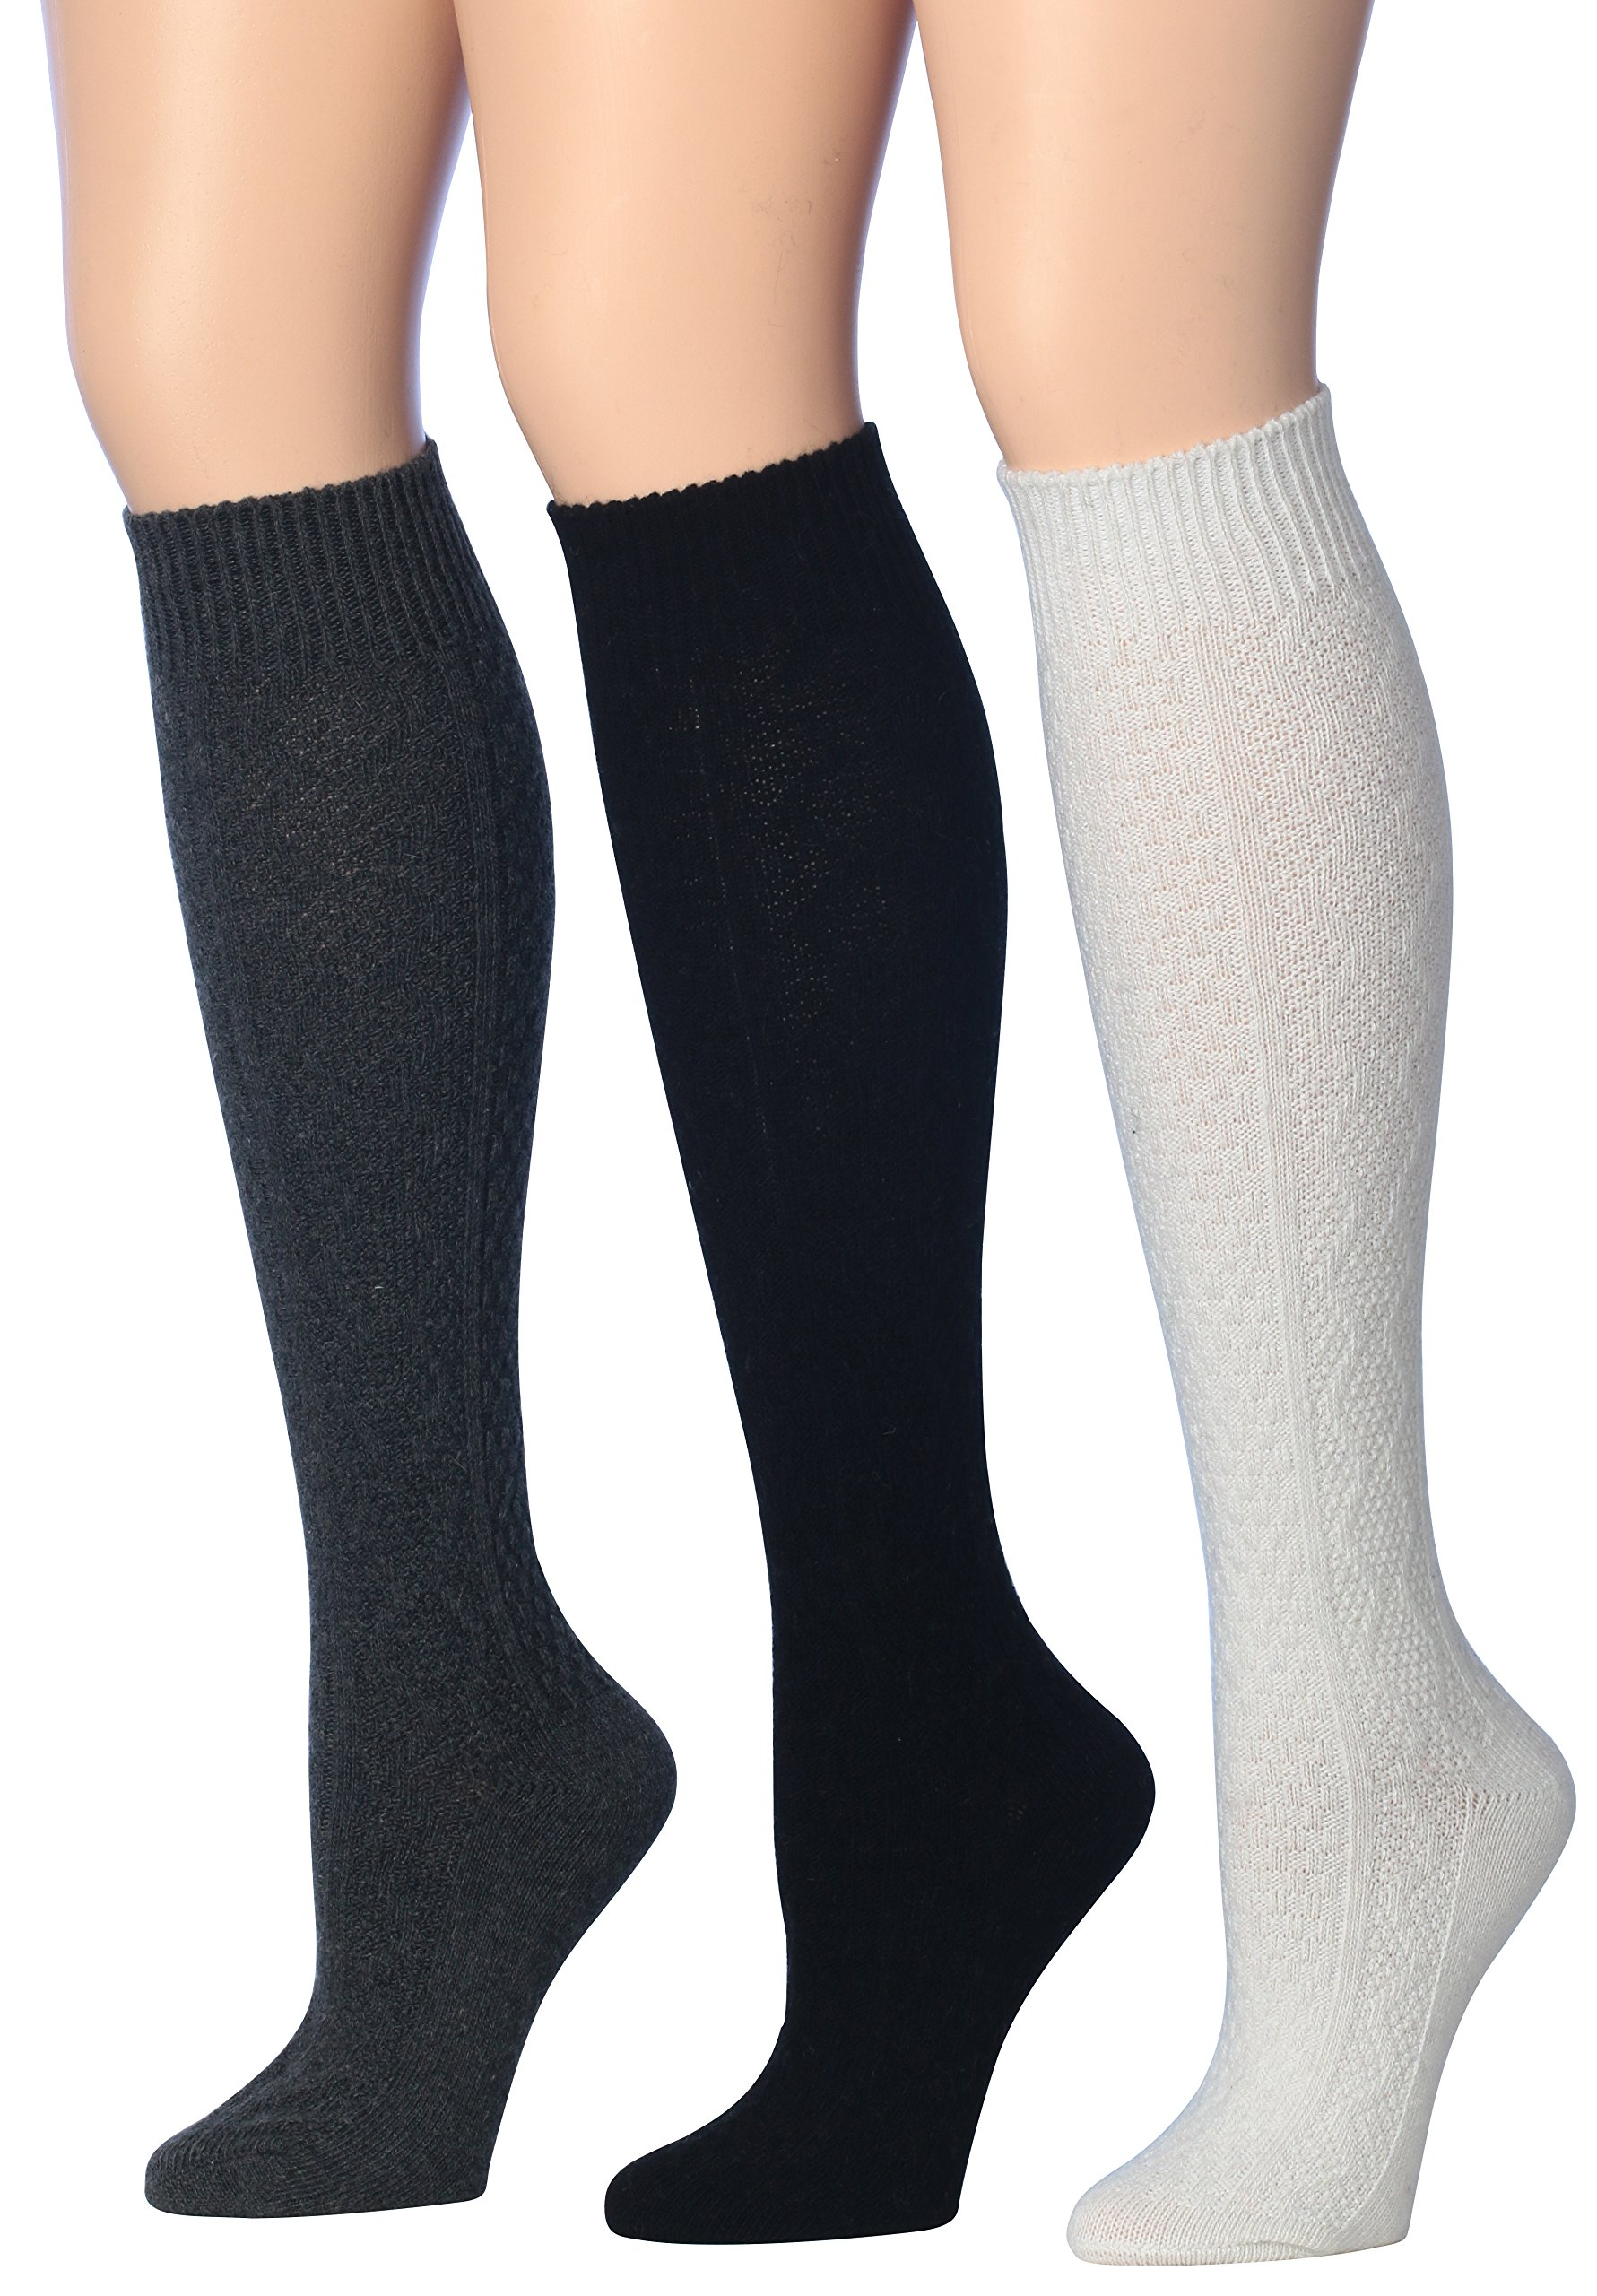 Tipi Toe Women's 3-Pairs Ragg Marled Argyle Knee High Wool-Blend Boot Socks, (sock size 9-11) Fits shoe size 6-9, WK01-A